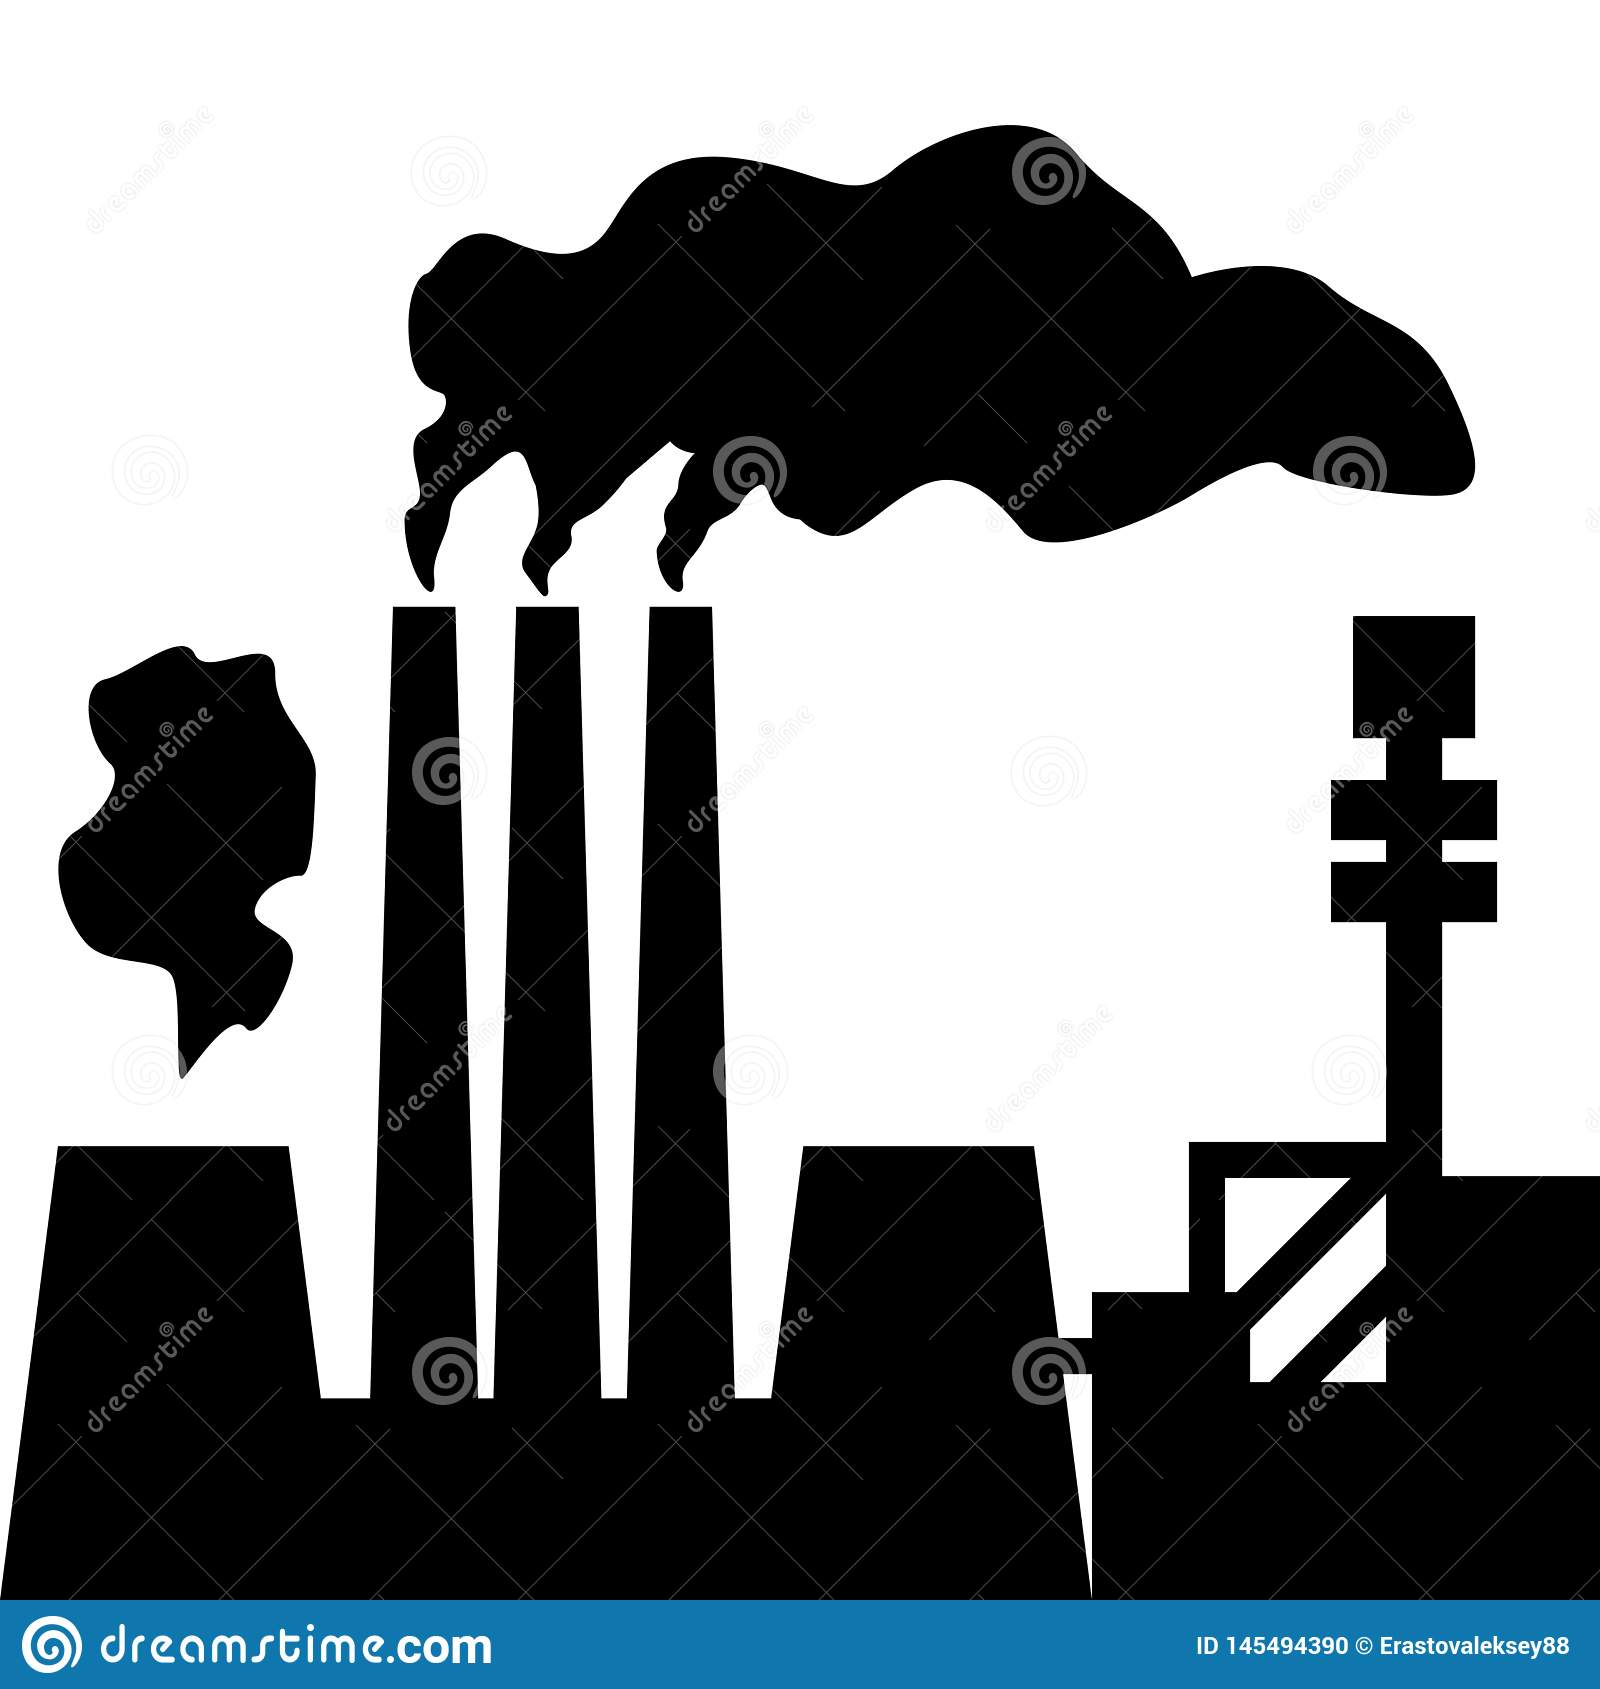 Air pollution. Silhouette of factory with smoking chimneys. Vector illustration.